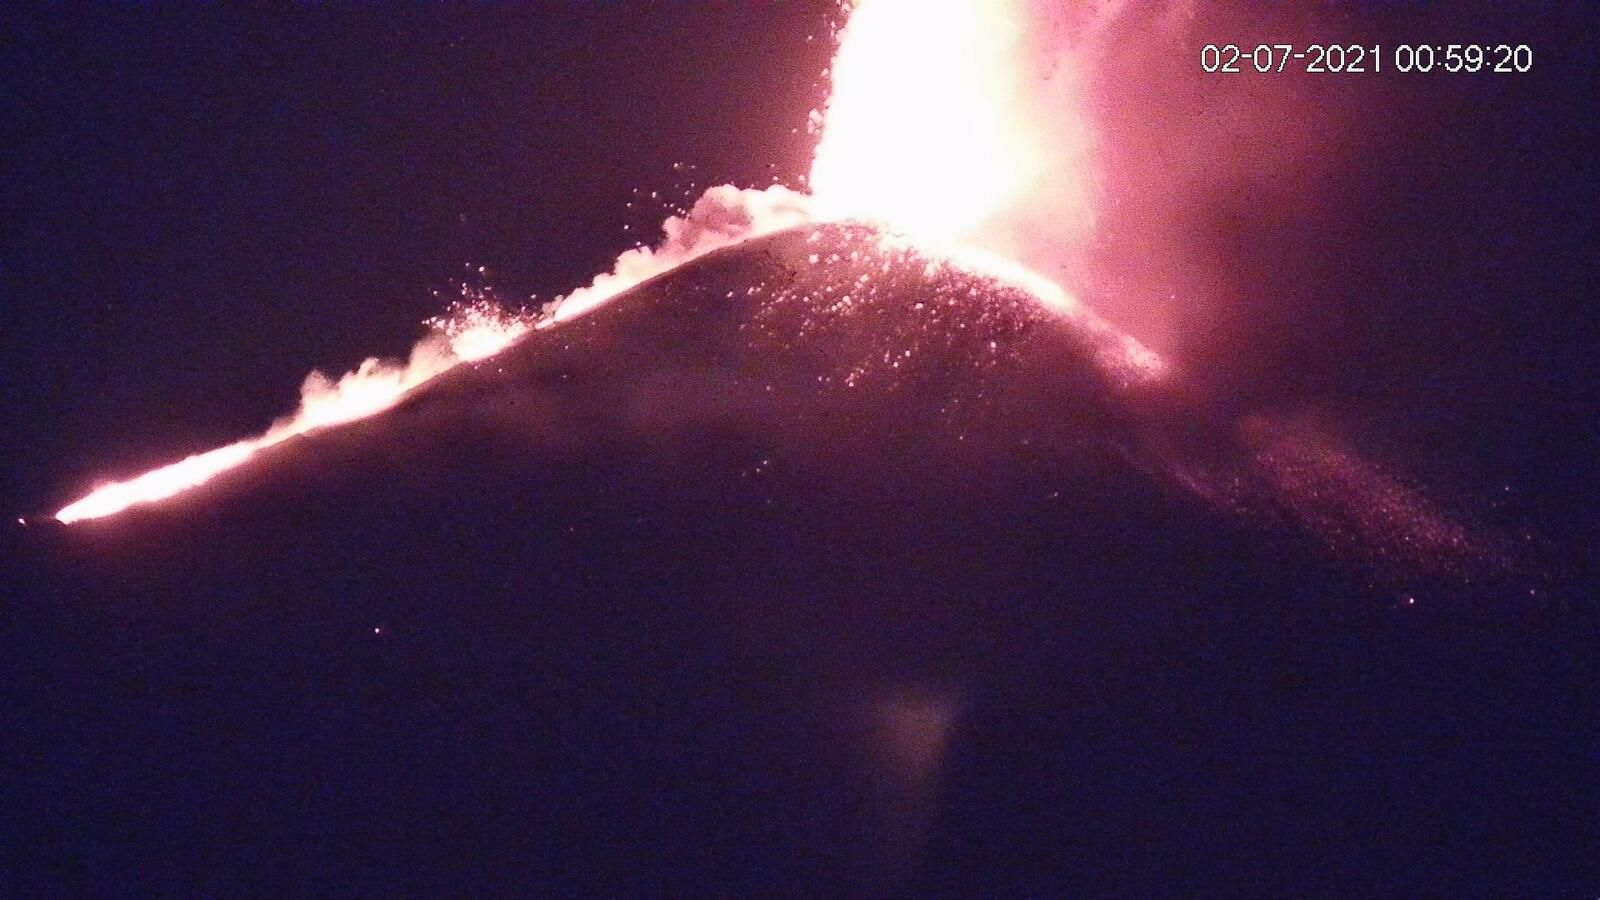 Etna SEC- the lava fountains at 07/02/2021 / 12:59 am and 1:59 am loc. -  webcam LAVE